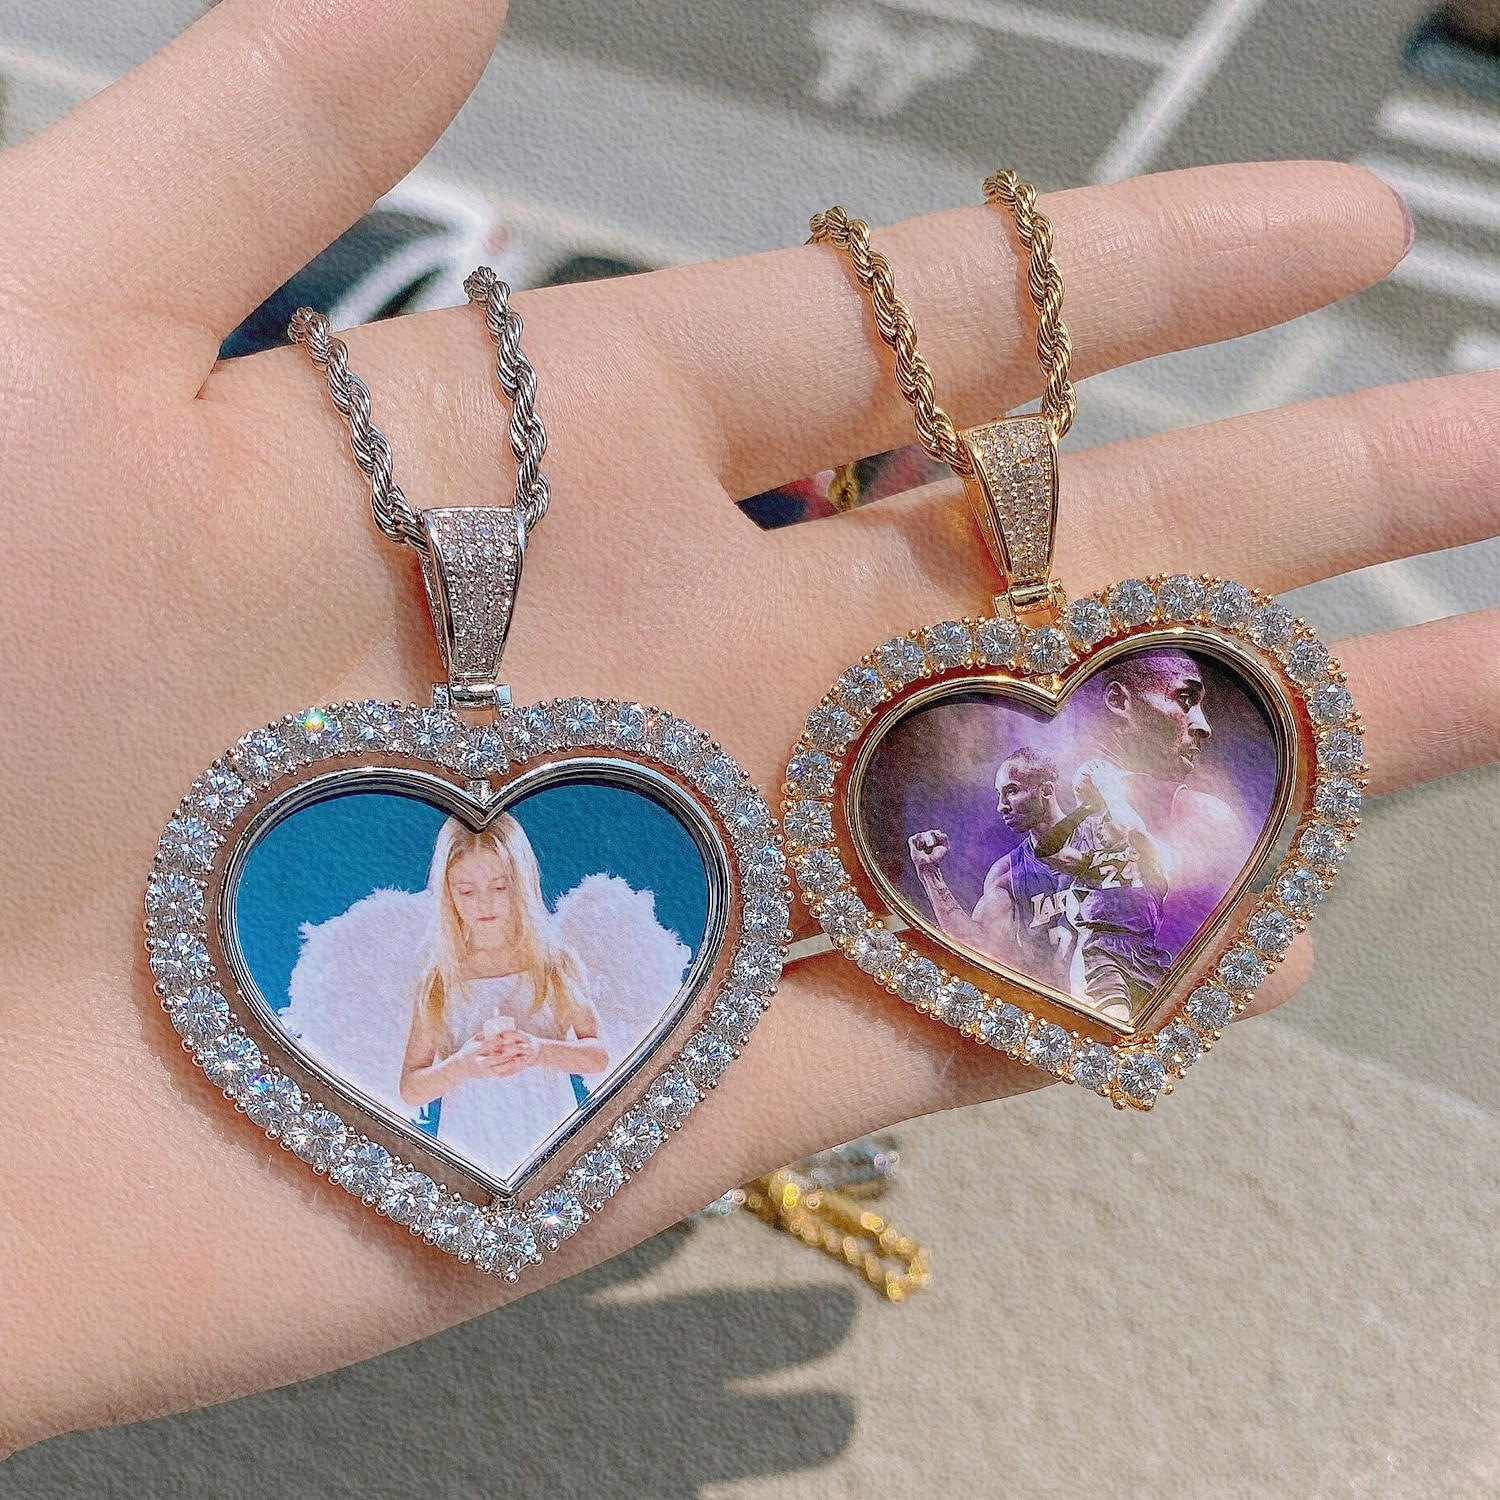 Custom Heart-Shaped Photo Medallions Memory Necklace Pendant Double-side Bling Cubic Zirconia Personalized Customized Jewelry